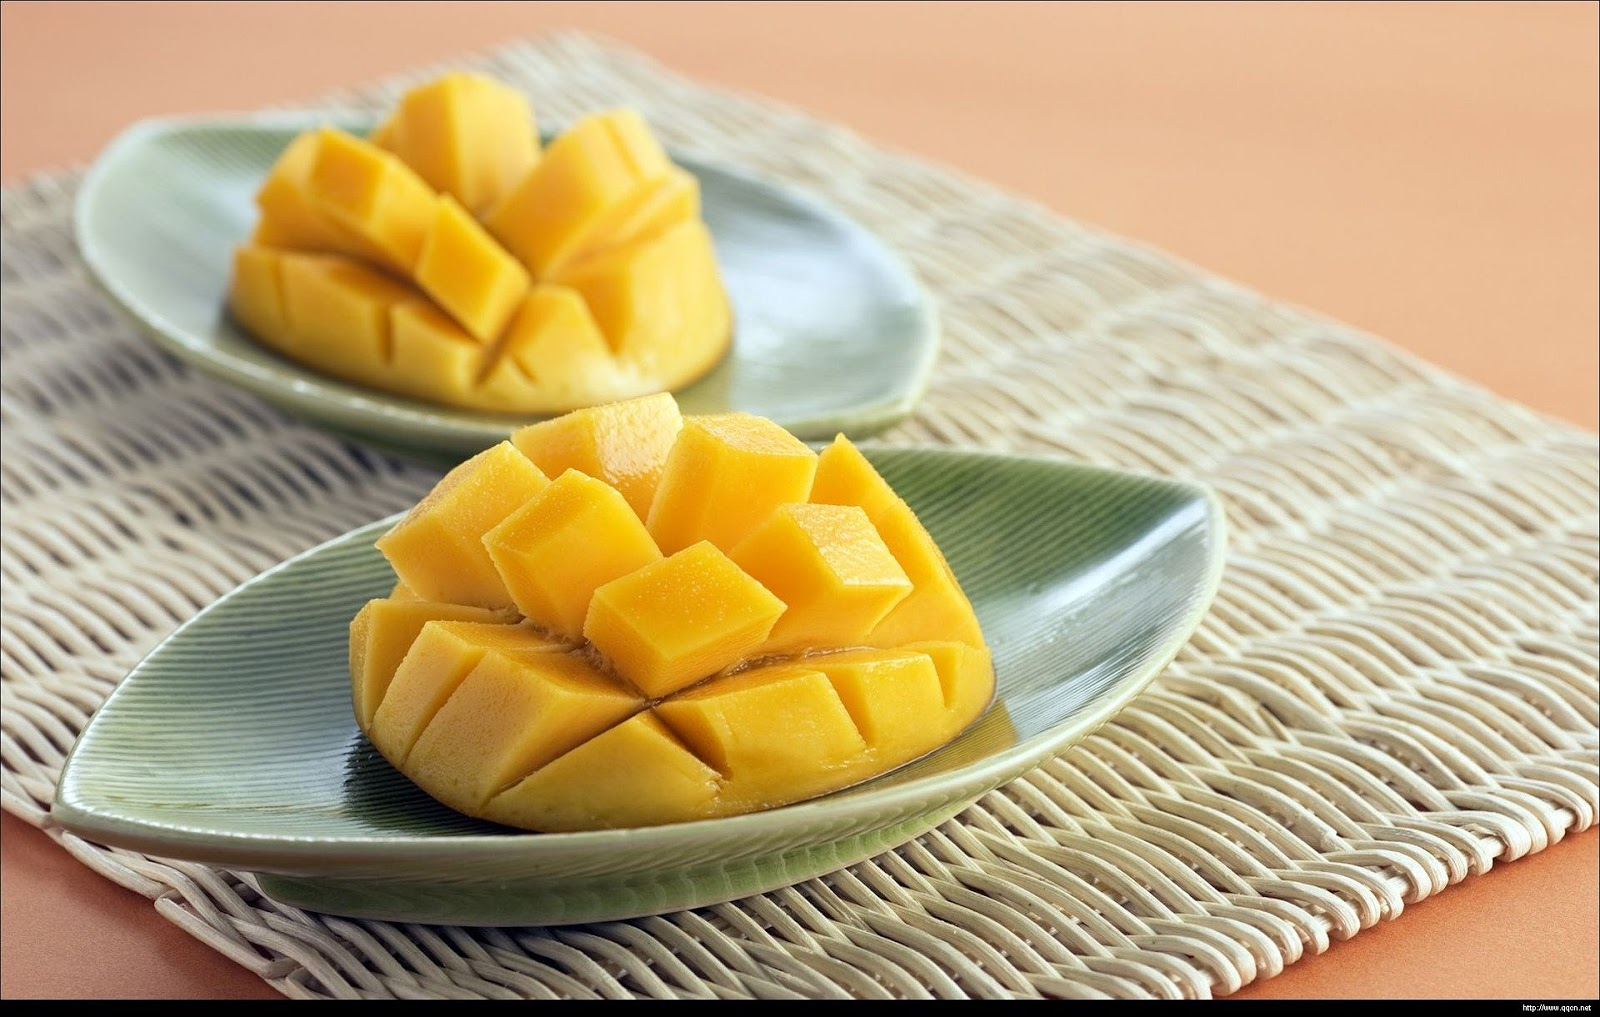 Mango slices on green plate HD